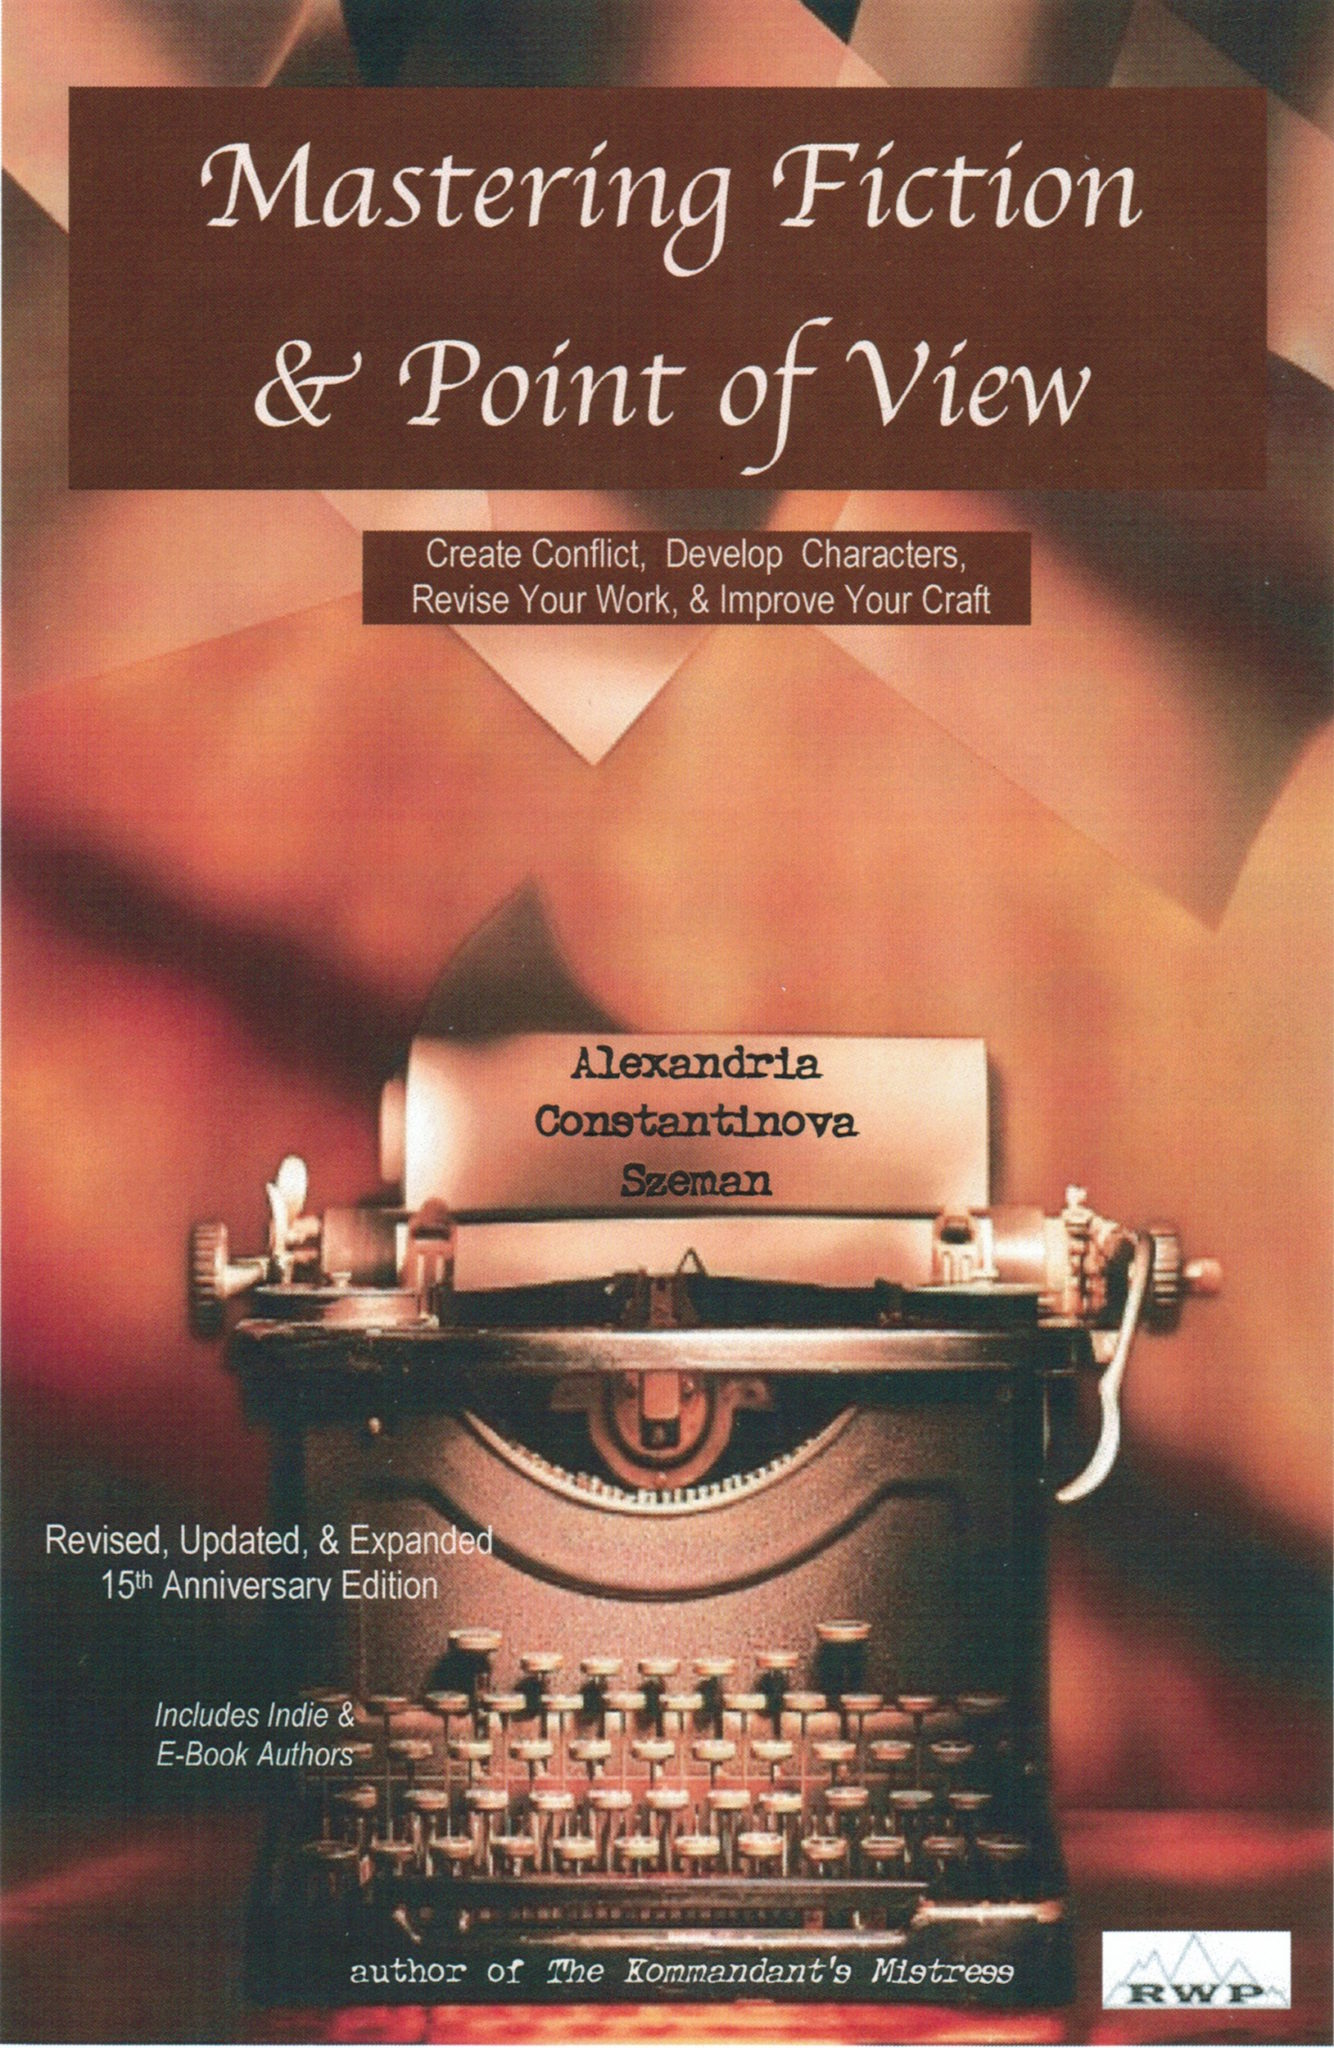 Mastering Fiction and Point of View, 20th Anniversary Edition, by Alexandria Szeman, formerly writing as Sherri Szeman